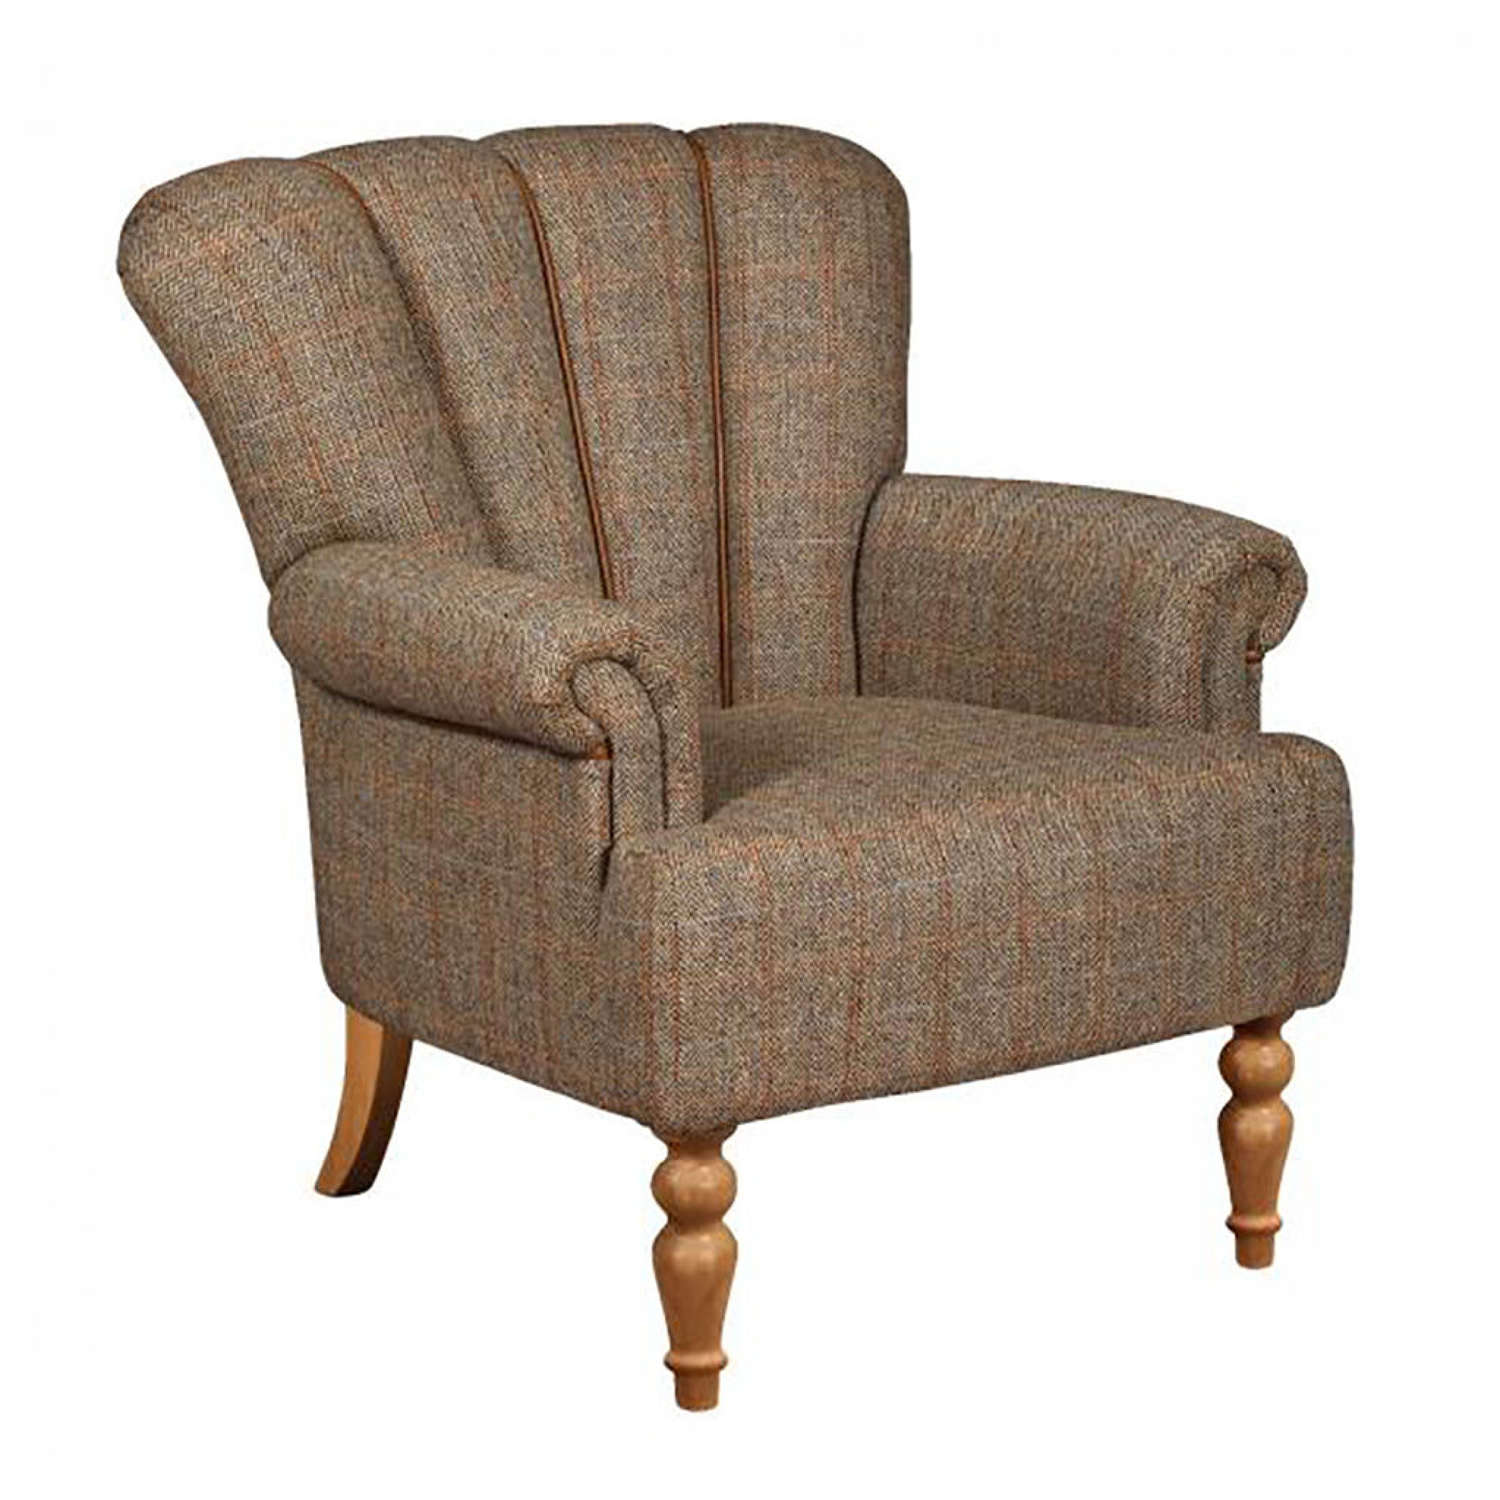 Lily Armchair in Harris tweed and Leather